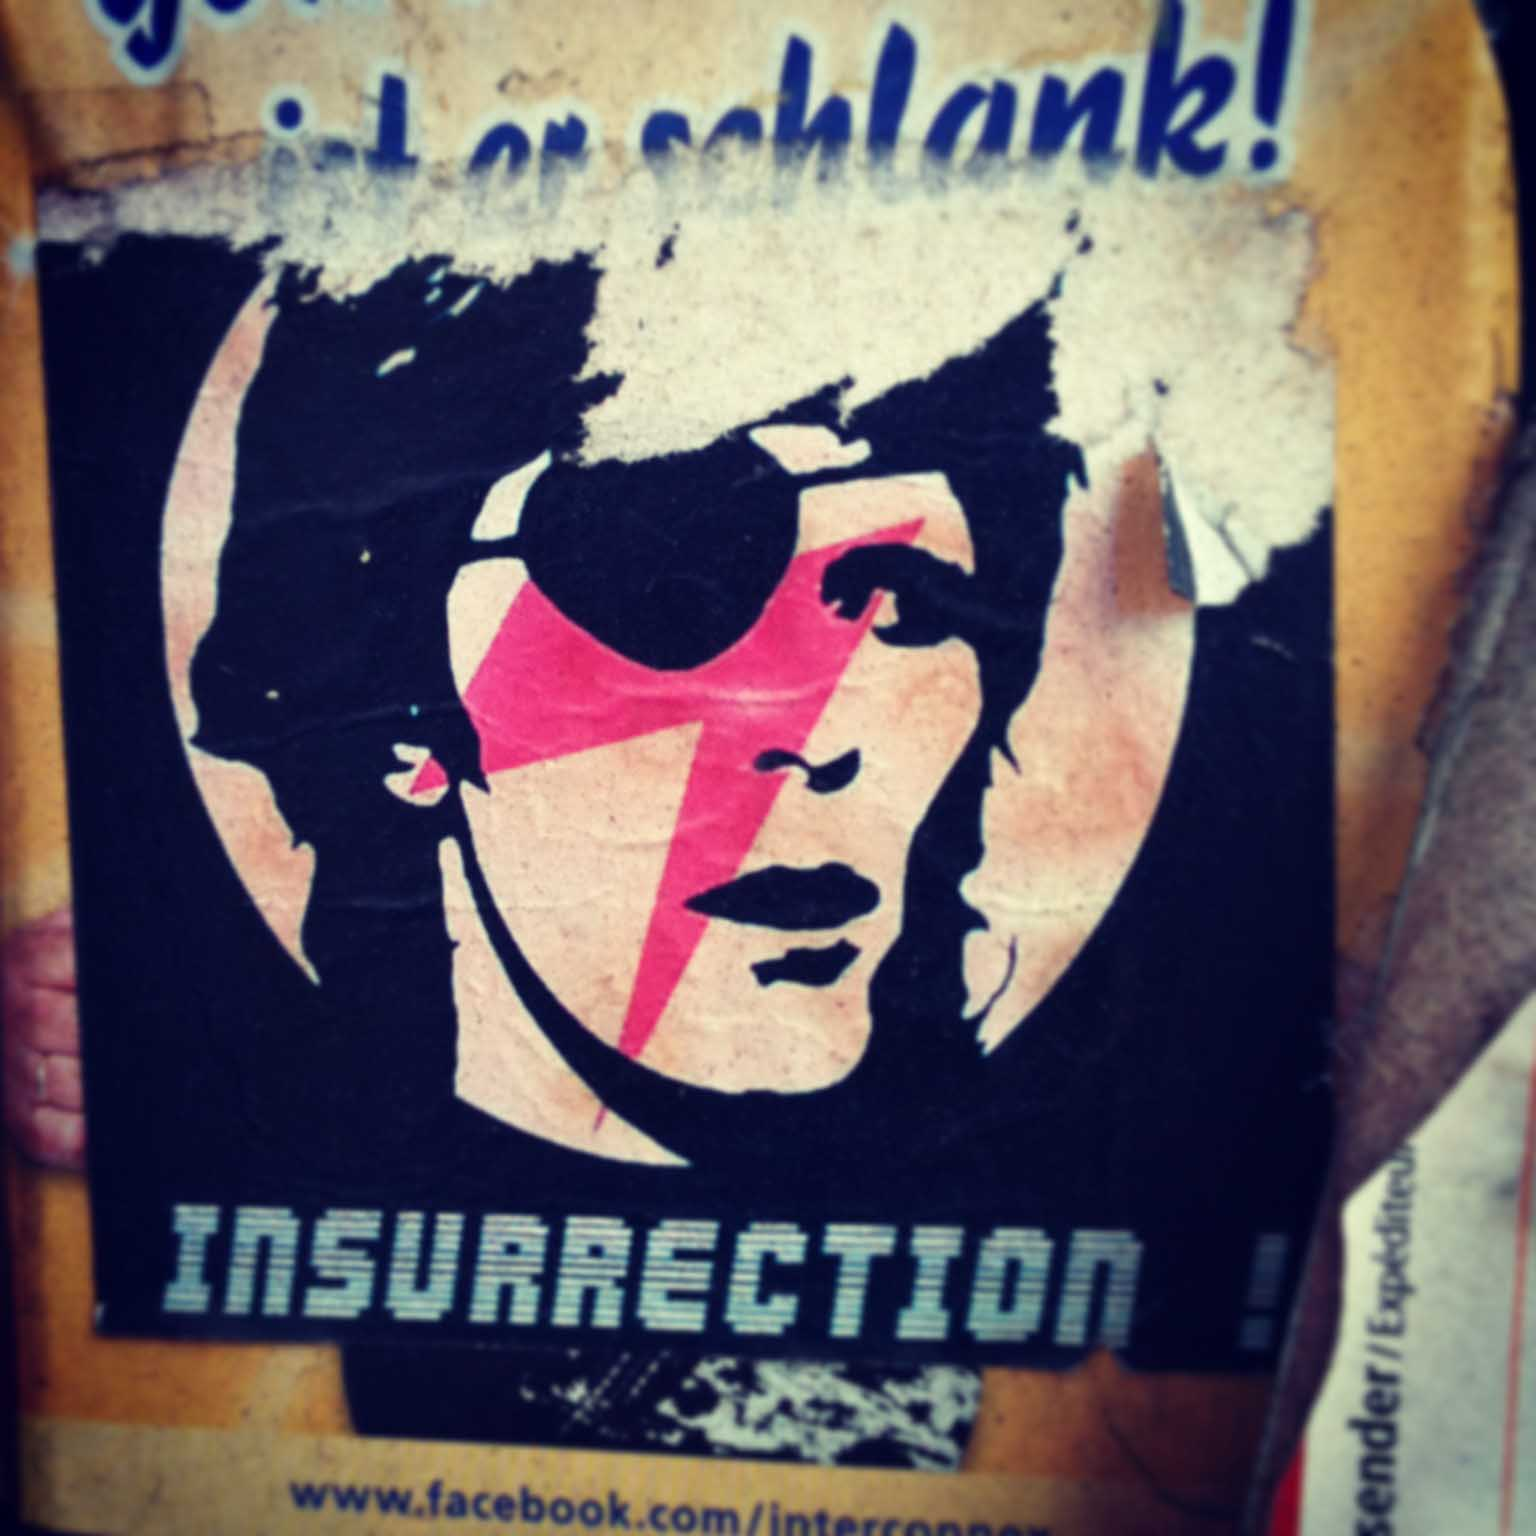 Bowie Insurrection Sticker by Maxx on a Berlin lamp post